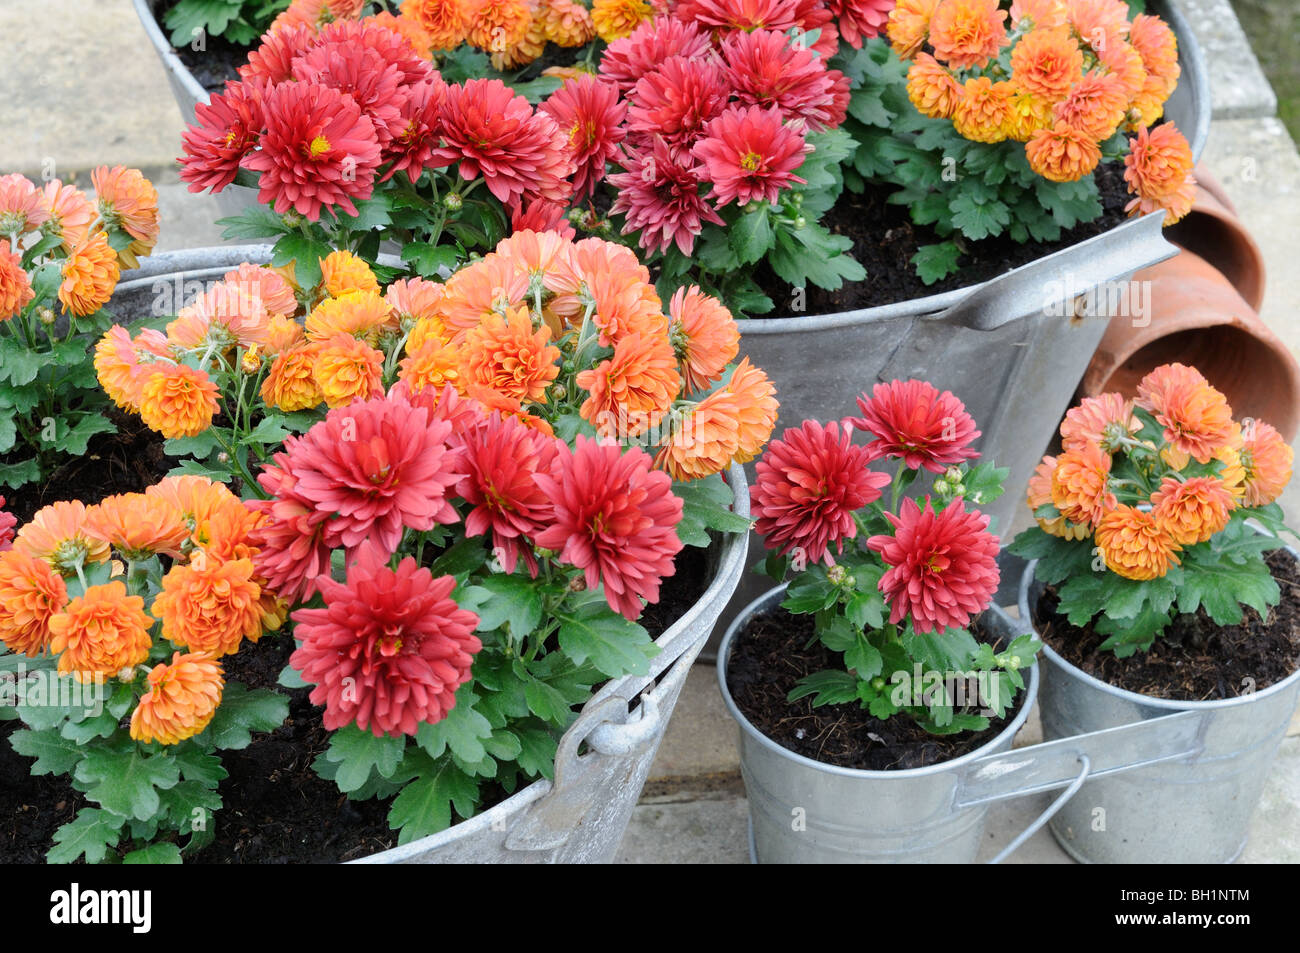 Miniature Autumn chrysanthemums, planted in old galvanized containers, Norfolk, UK, October - Stock Image